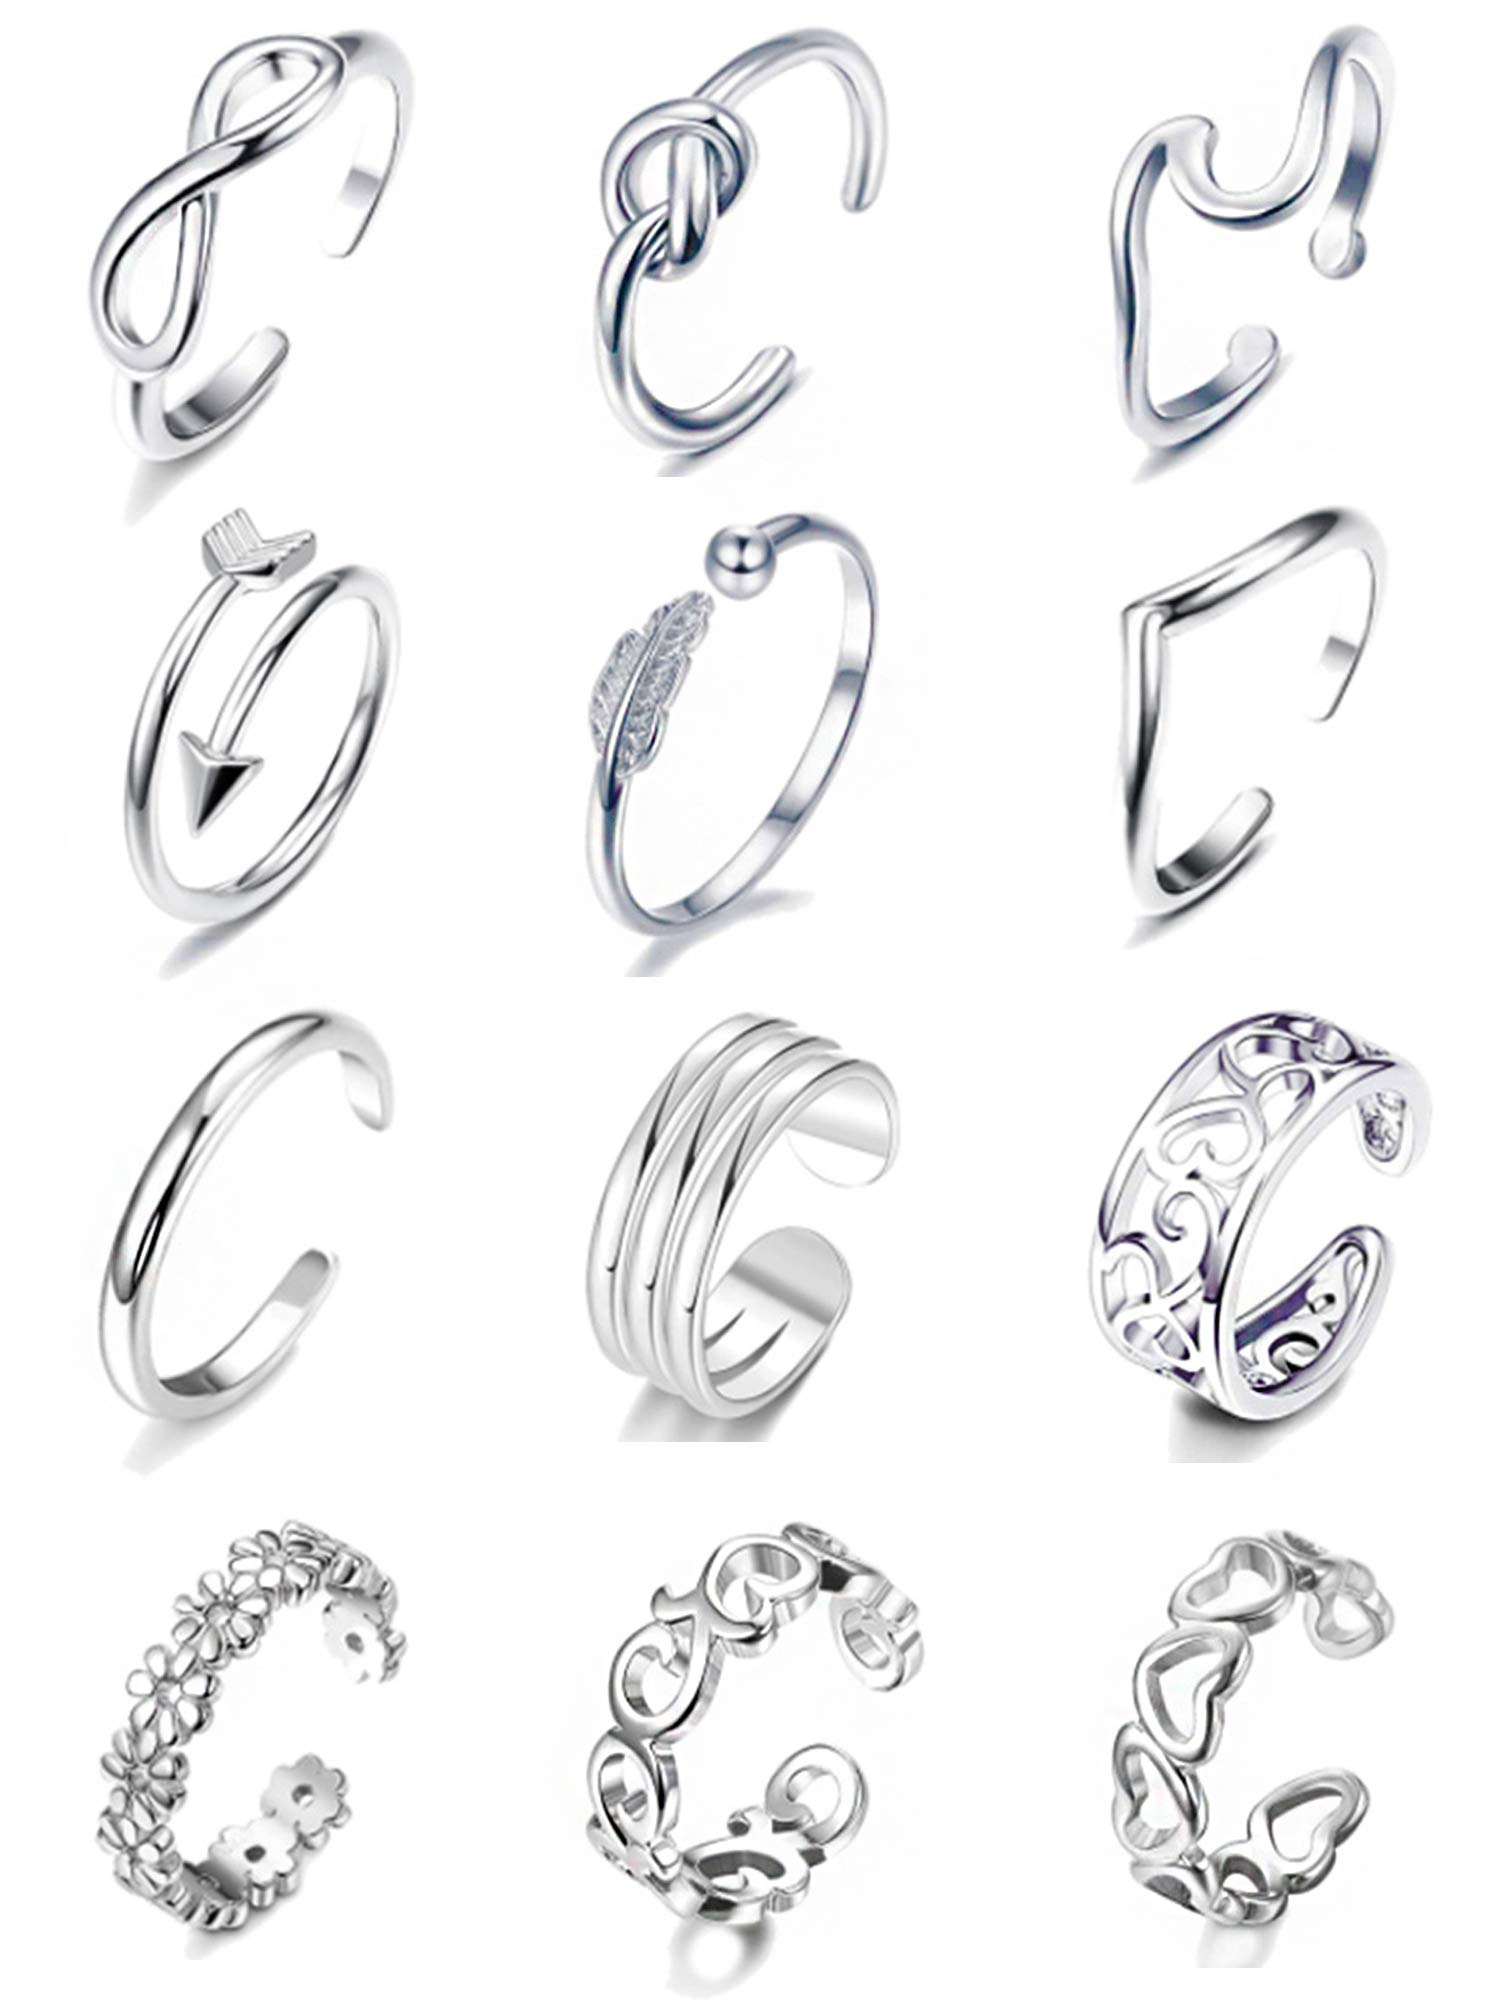 Cooluckday Open Toe Rings Adjustable Hypoallergenic Knuckle Ring Flower Knot Joint Tail Band Fingers Rings Foot Jewelry 12 Pcs